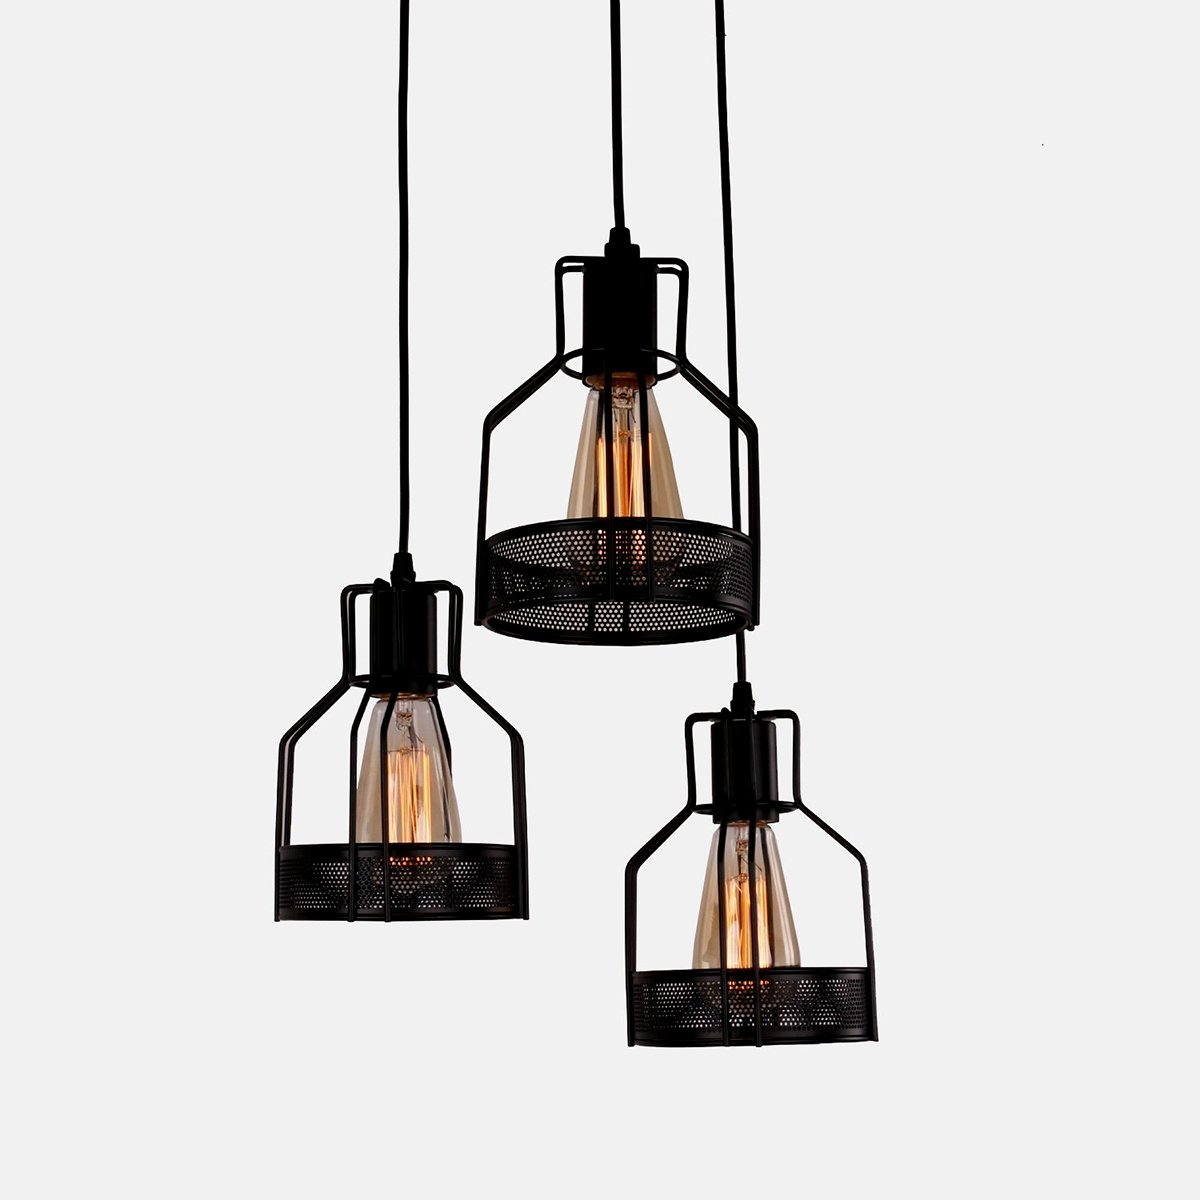 "Industrial Pendant Island Light, MKLOT Ecopower Retro Vintage Style 5.51"" Wide Edison Antique Black Wire Cage Pendant Lighting Ceiling Lamp Chandelier 3-lights"